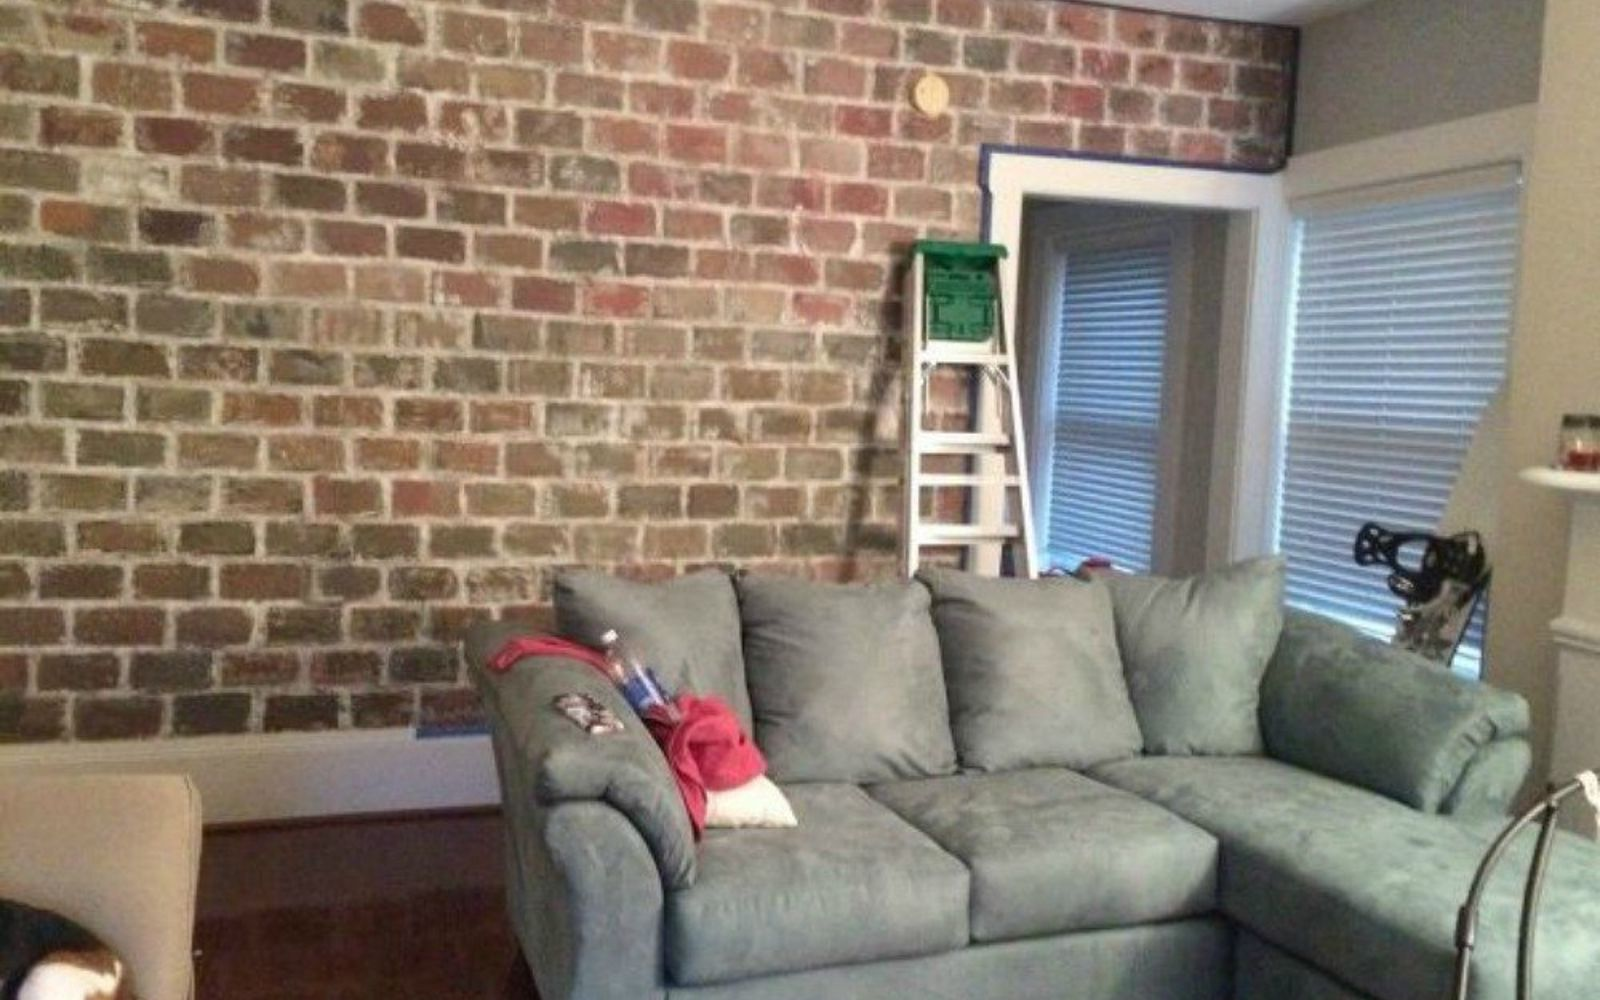 s 12 stunning ways to get that exposed brick look in your home, Use a paint mixture to create a brick effect